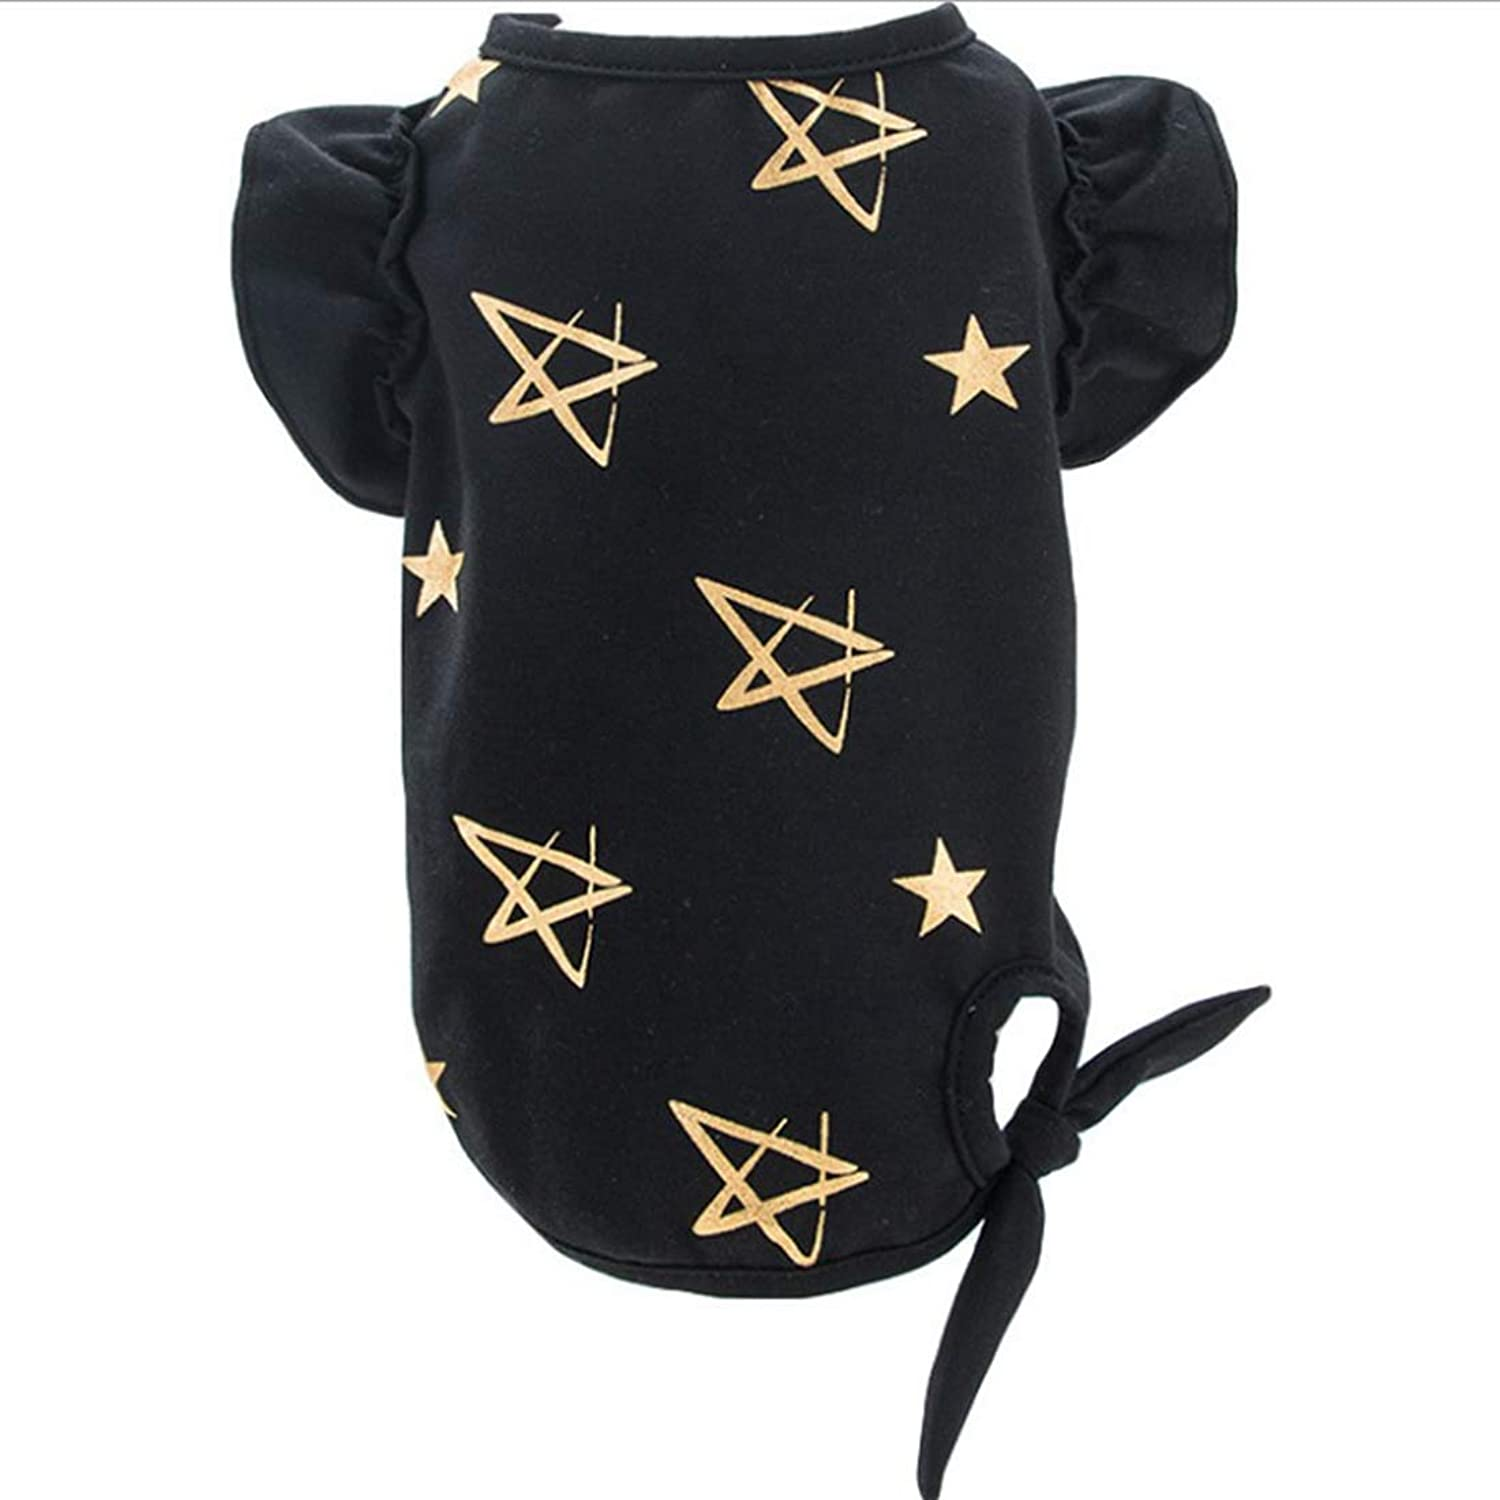 Huayue Precious Dog Clothes Pet Puppy Dog TShirt Spring and Summer Slight Section (color   Black, Size   XL)